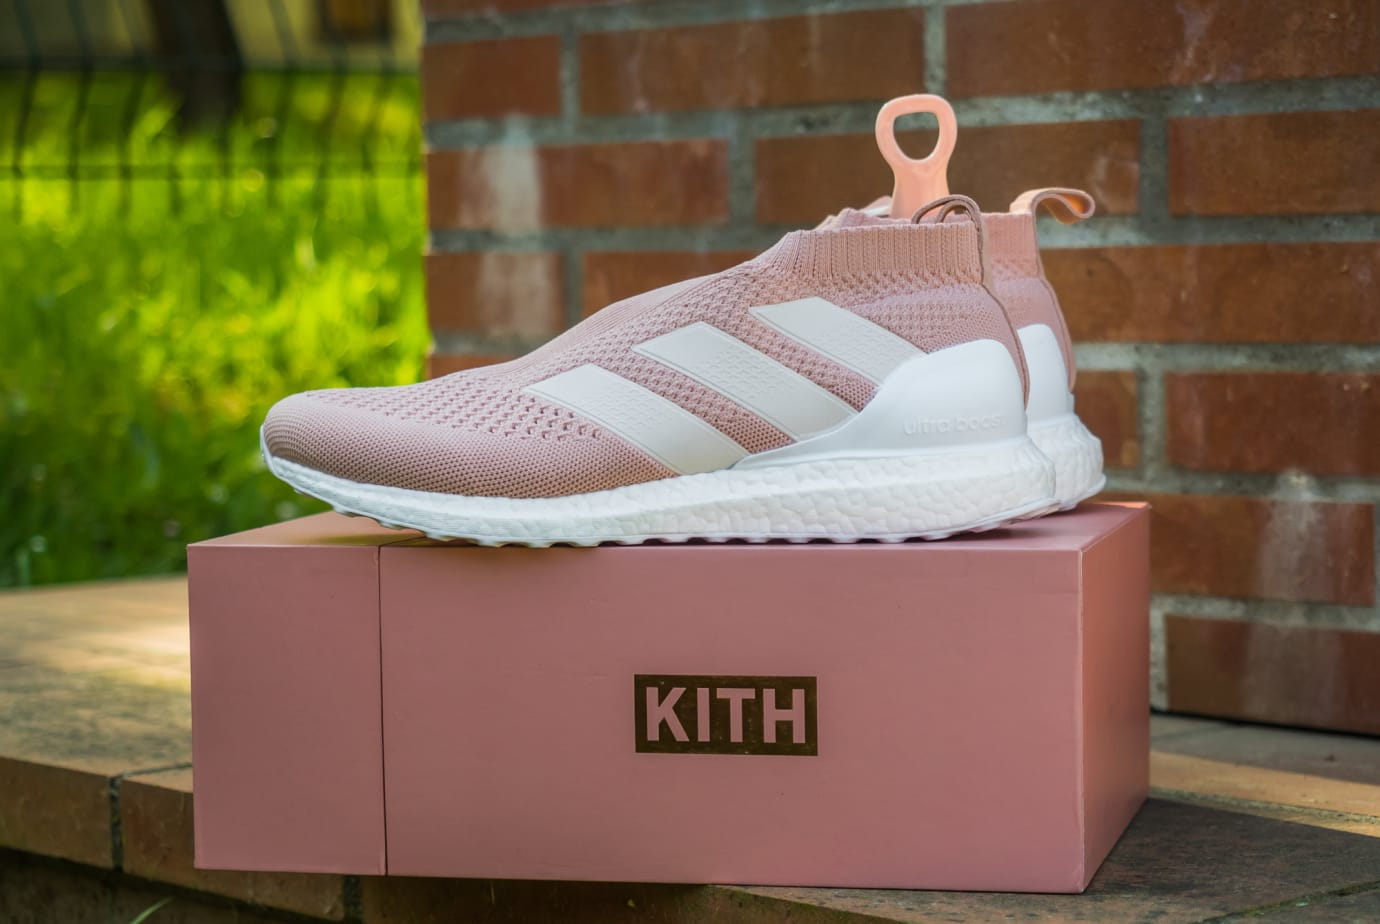 finest selection 0cddd c964a closeout adidas x kith flamingo nemeziz tango ultra boost 433f2 3bf68   germany kith adidas ultra boost ace 16 pure control flamingo profile 1a82d  e9a68